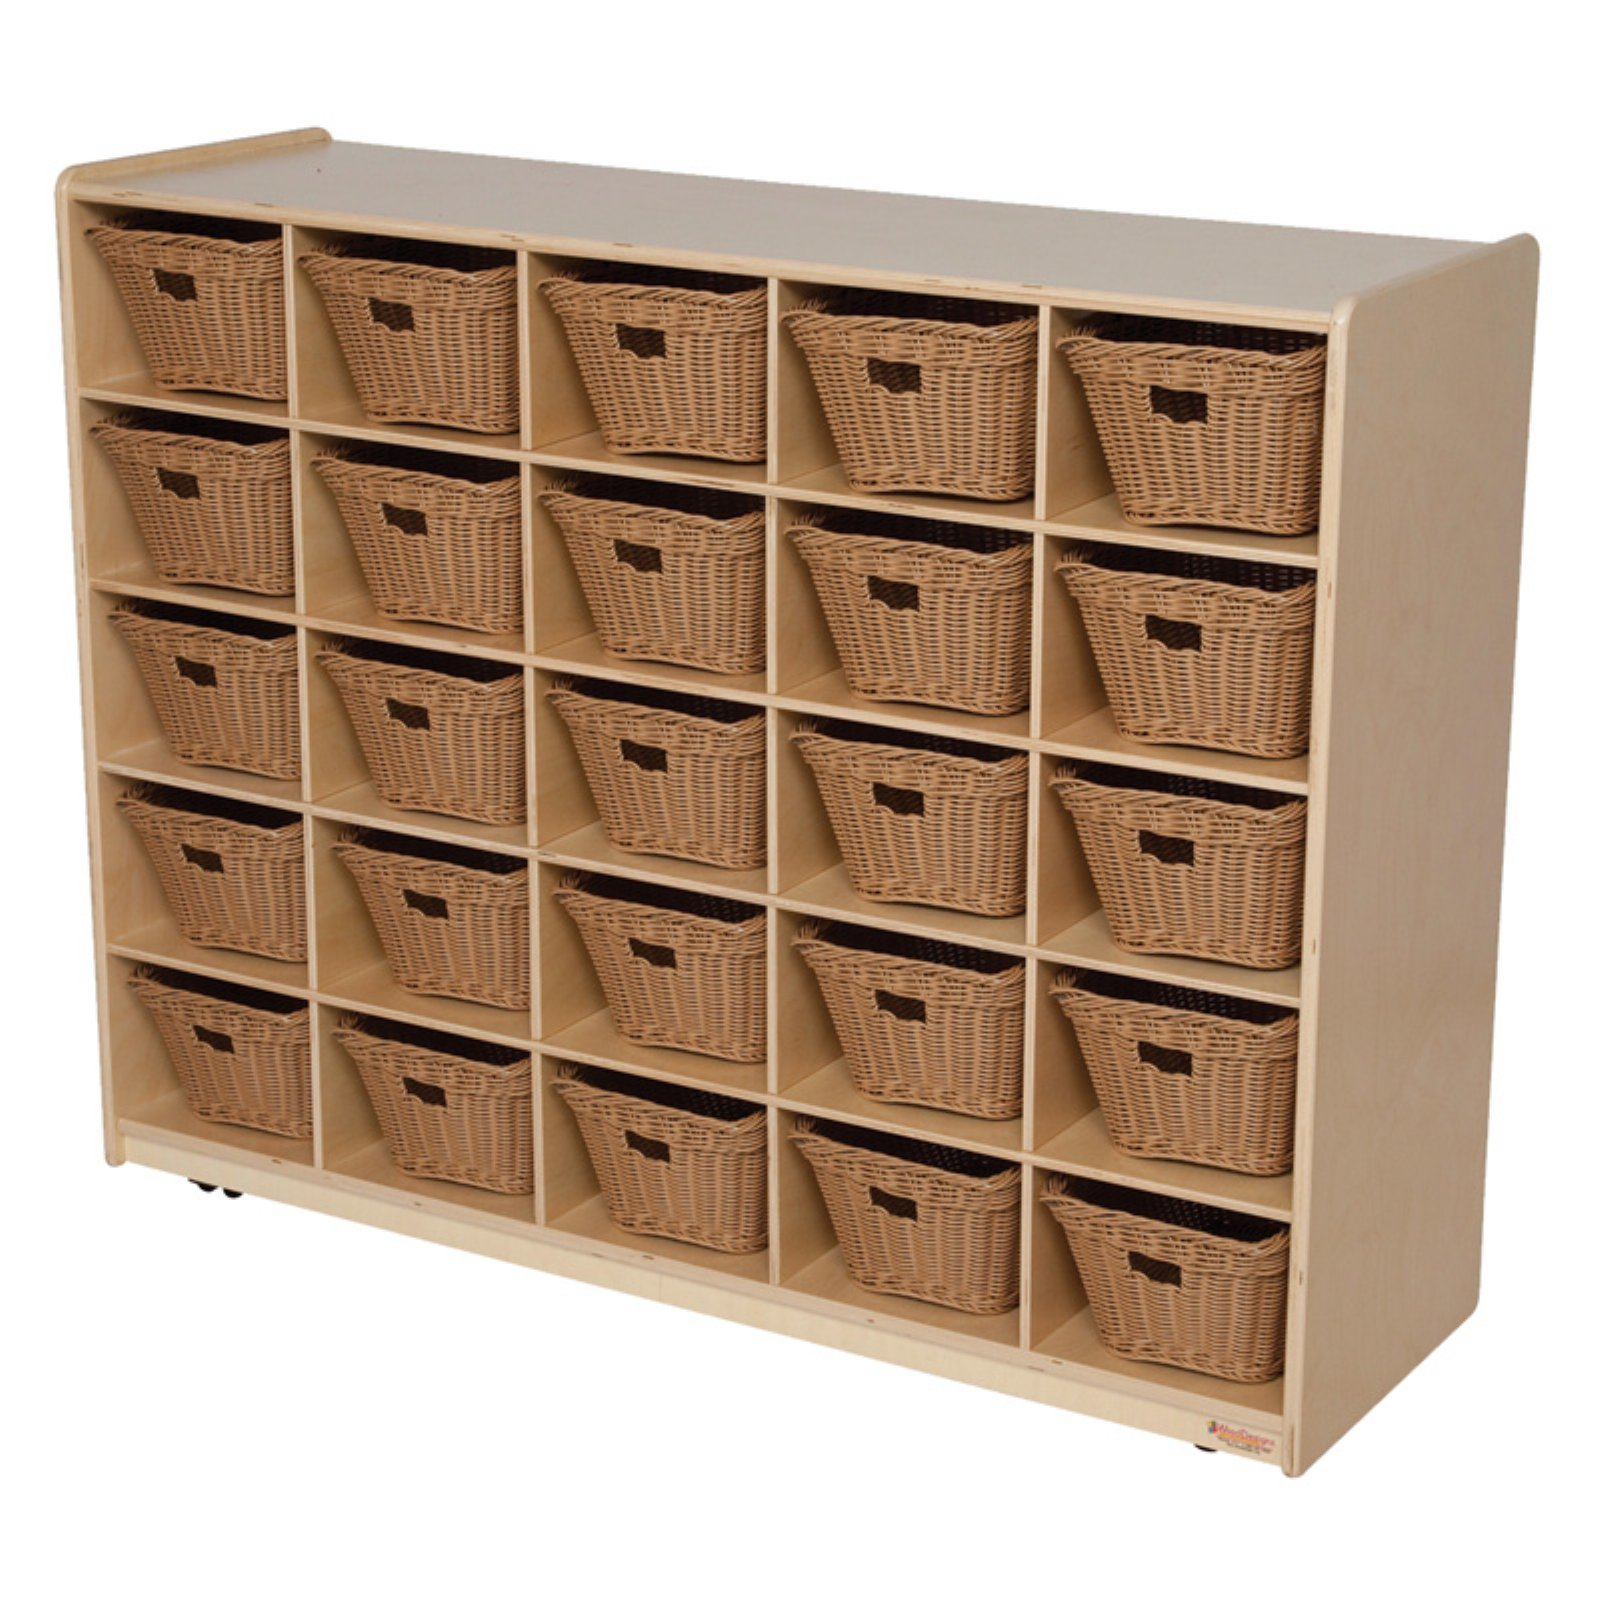 Wood Designs 25 Tray Storage with Baskets